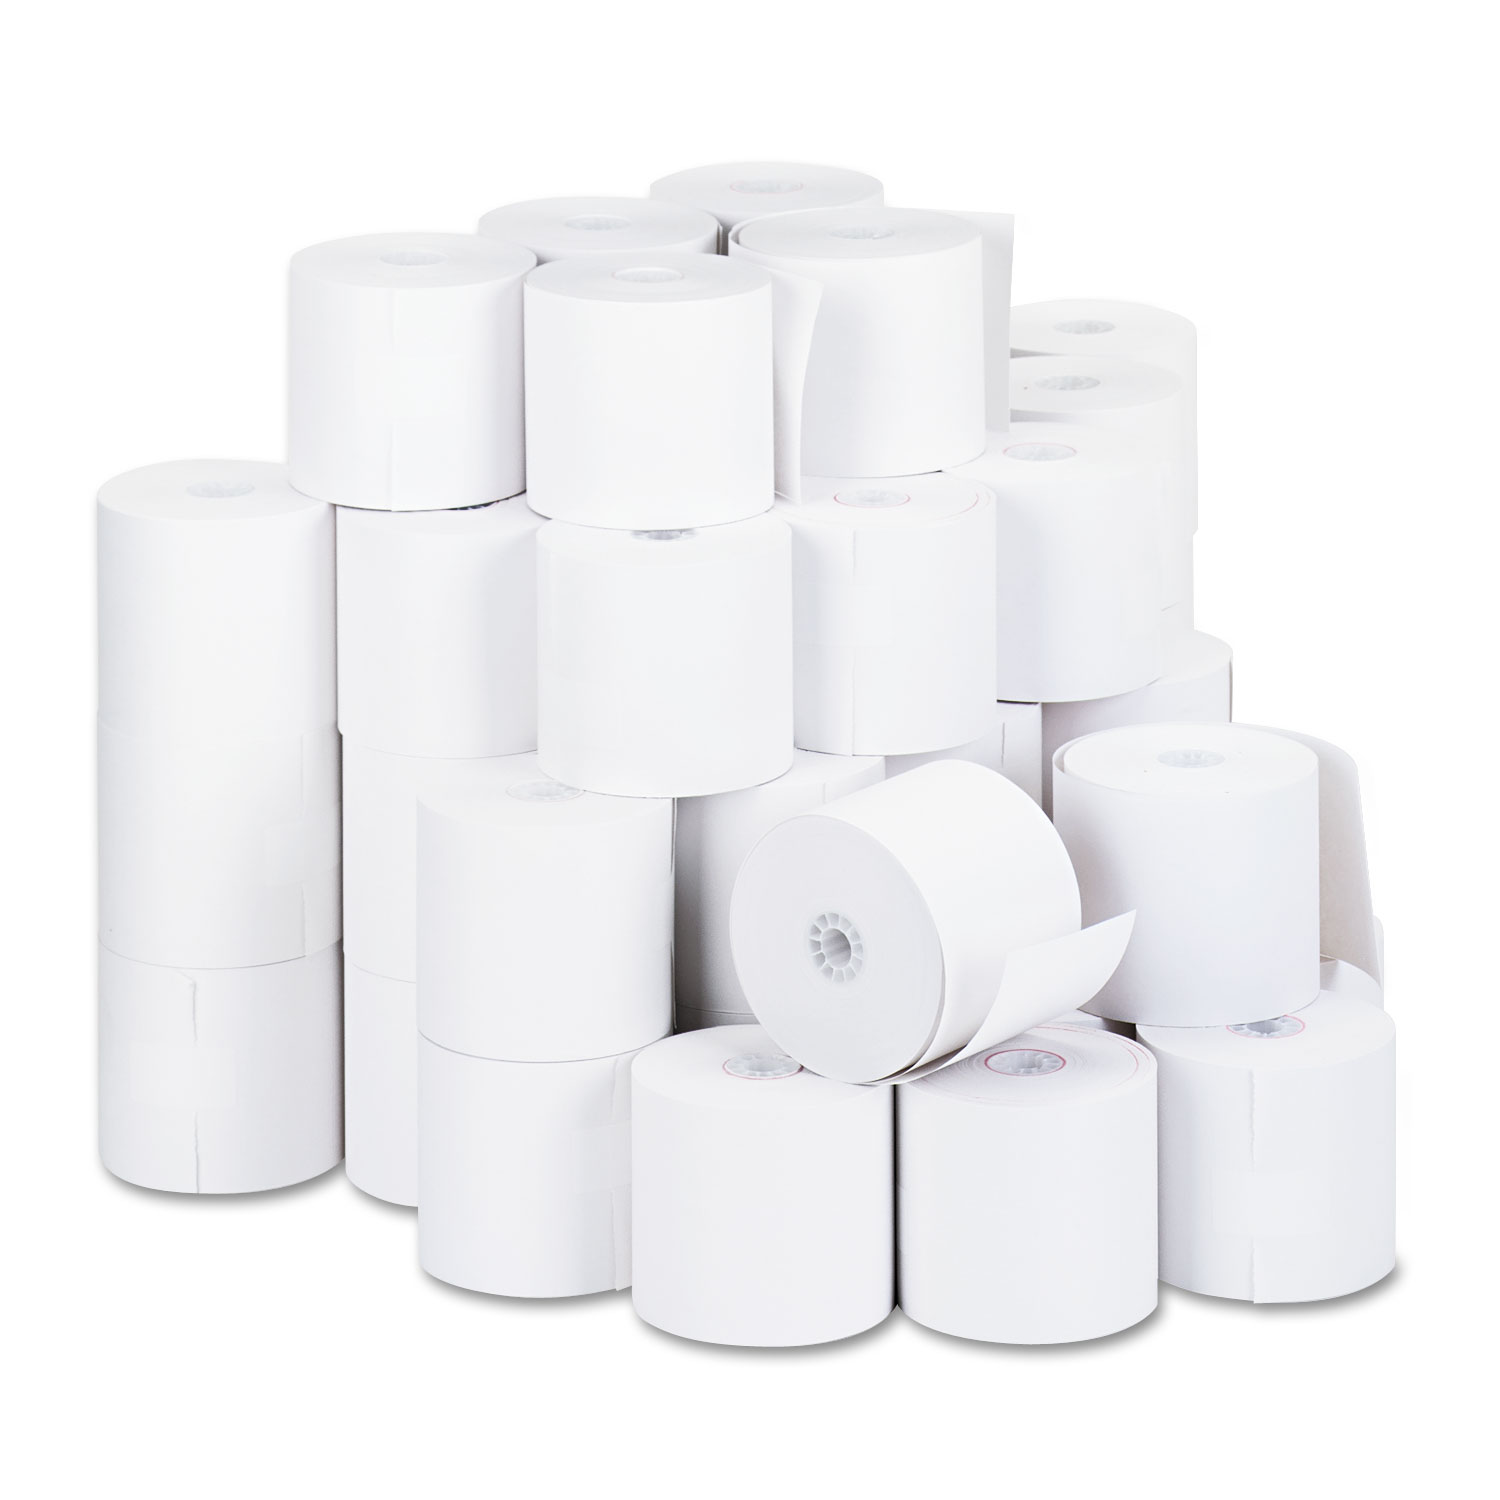 "1-Ply Cash Register/Point of Sale Roll, 16 lb, 1/2"" Core, 2-3/4"" x 190 ft, 50/Ct"